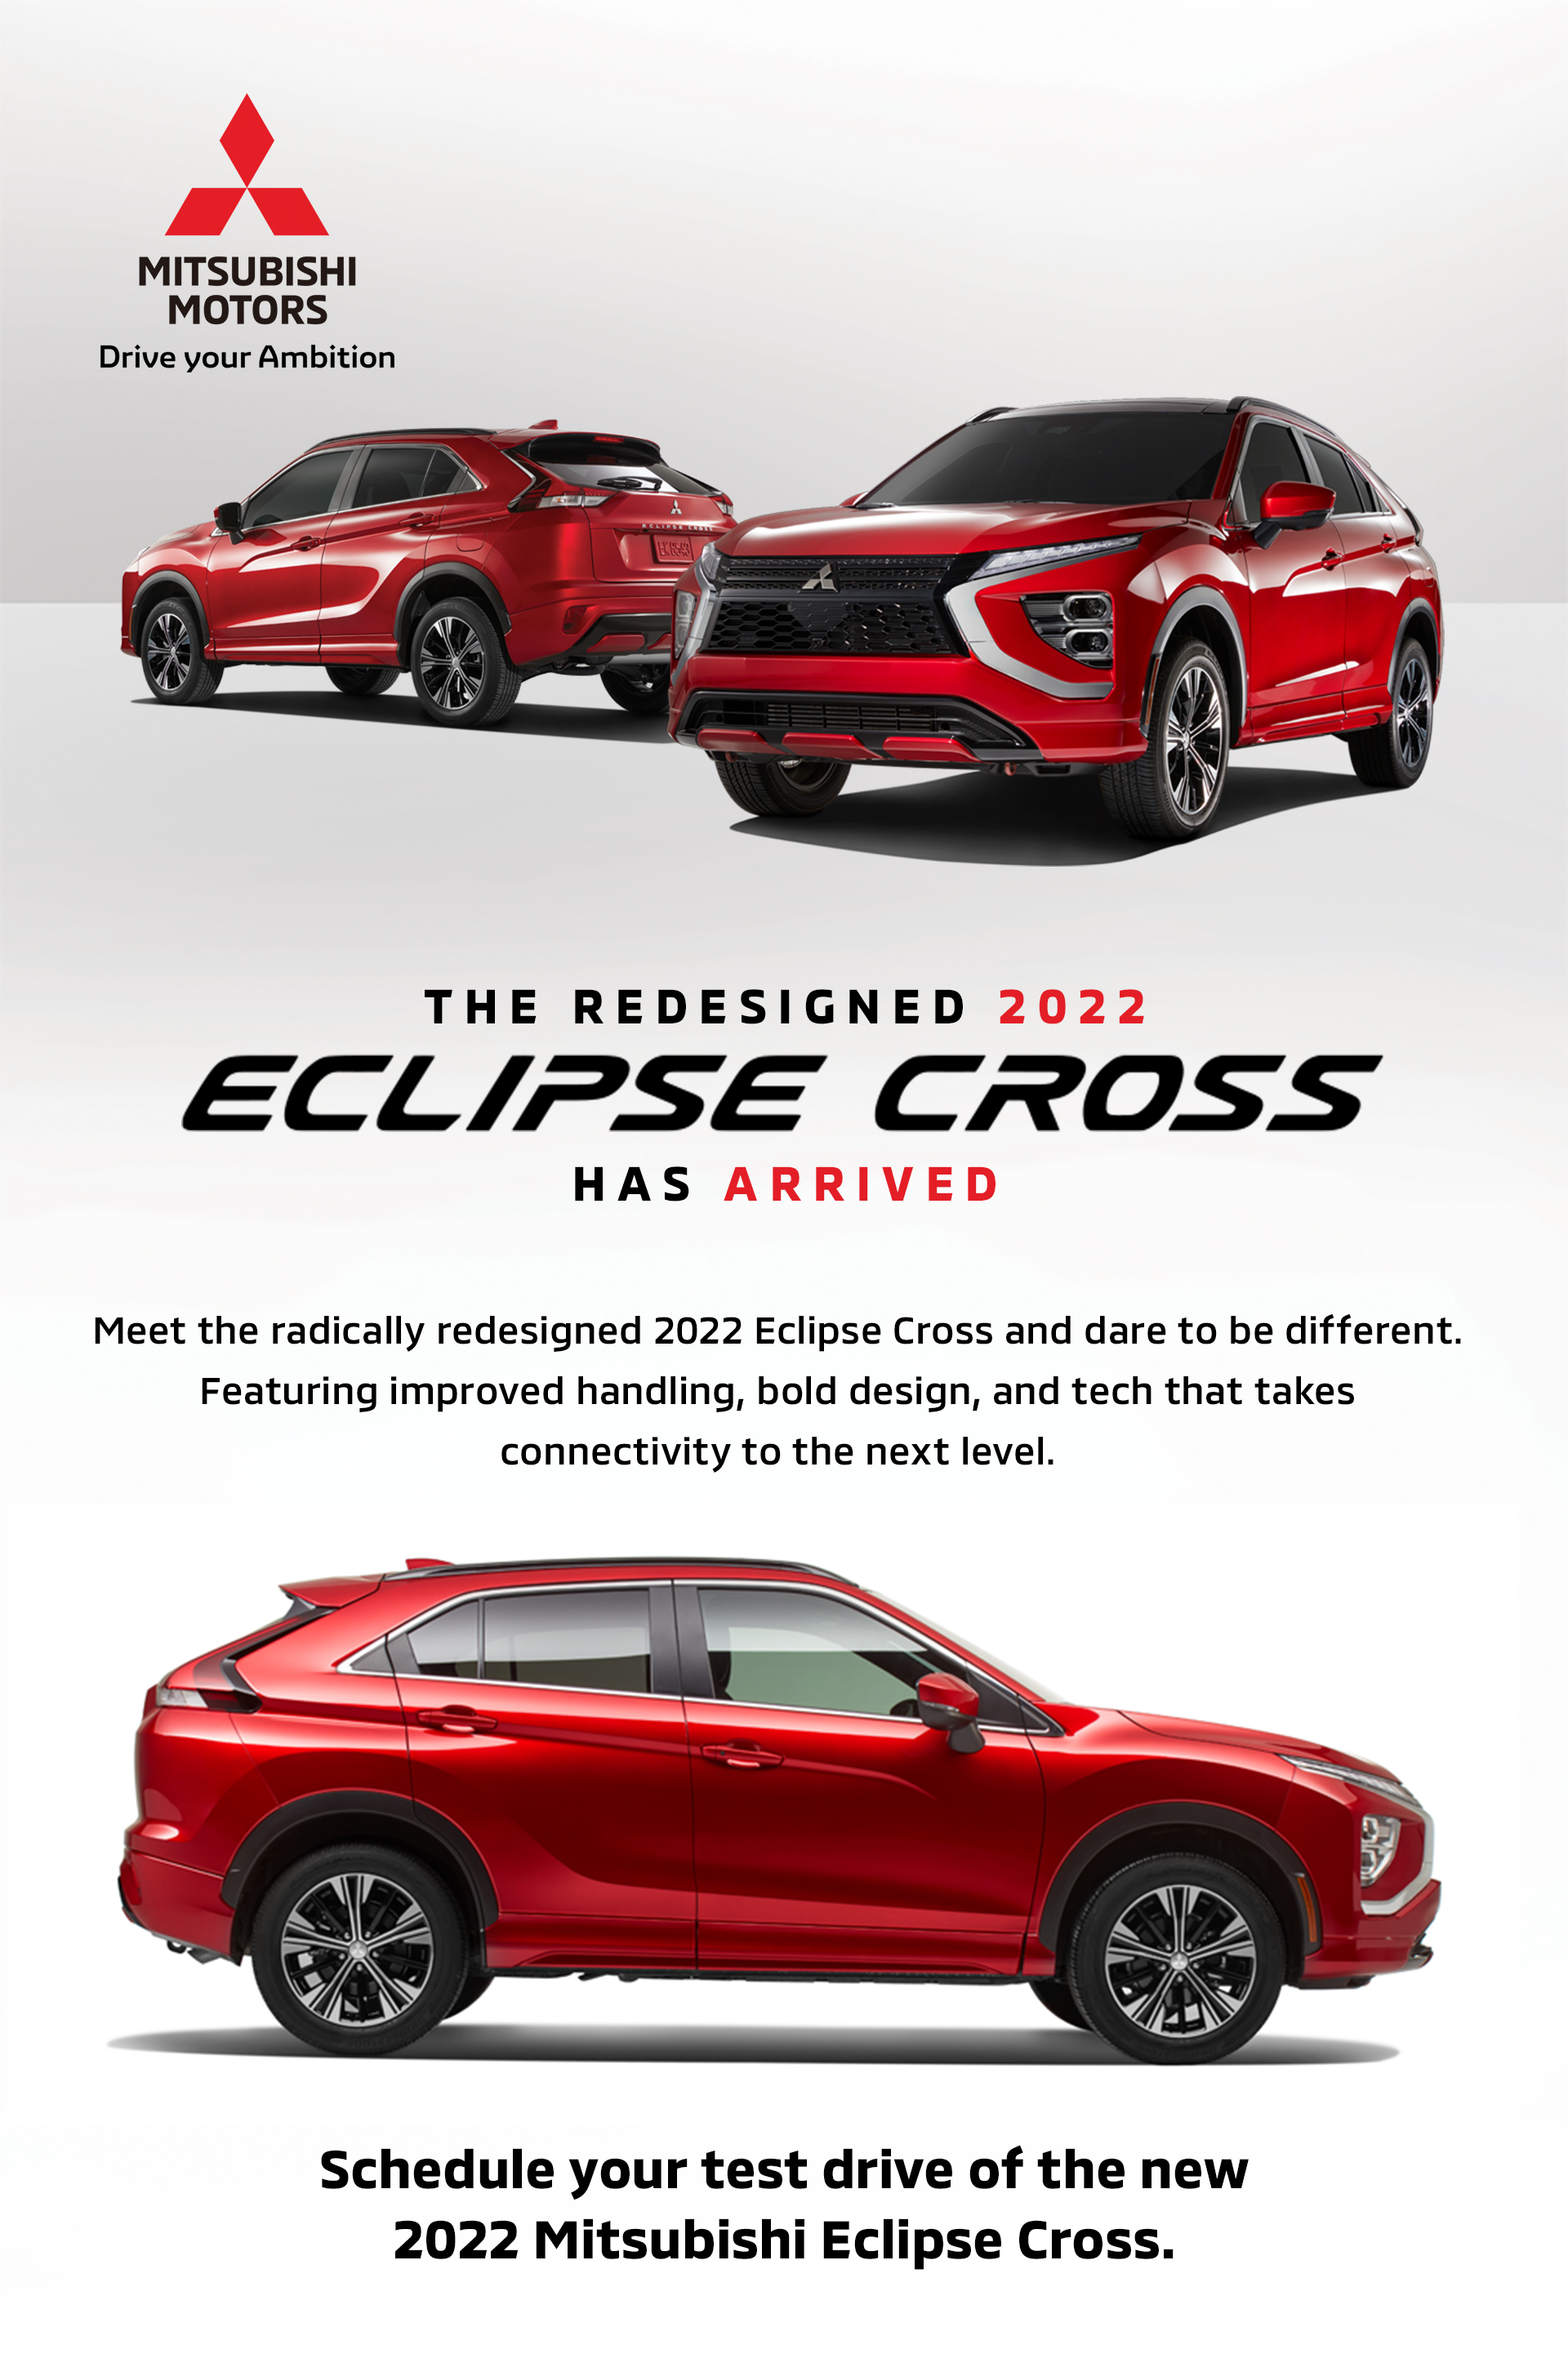 The Redesigned 2022 Mitsubishi Eclipse Cross Has Arrived